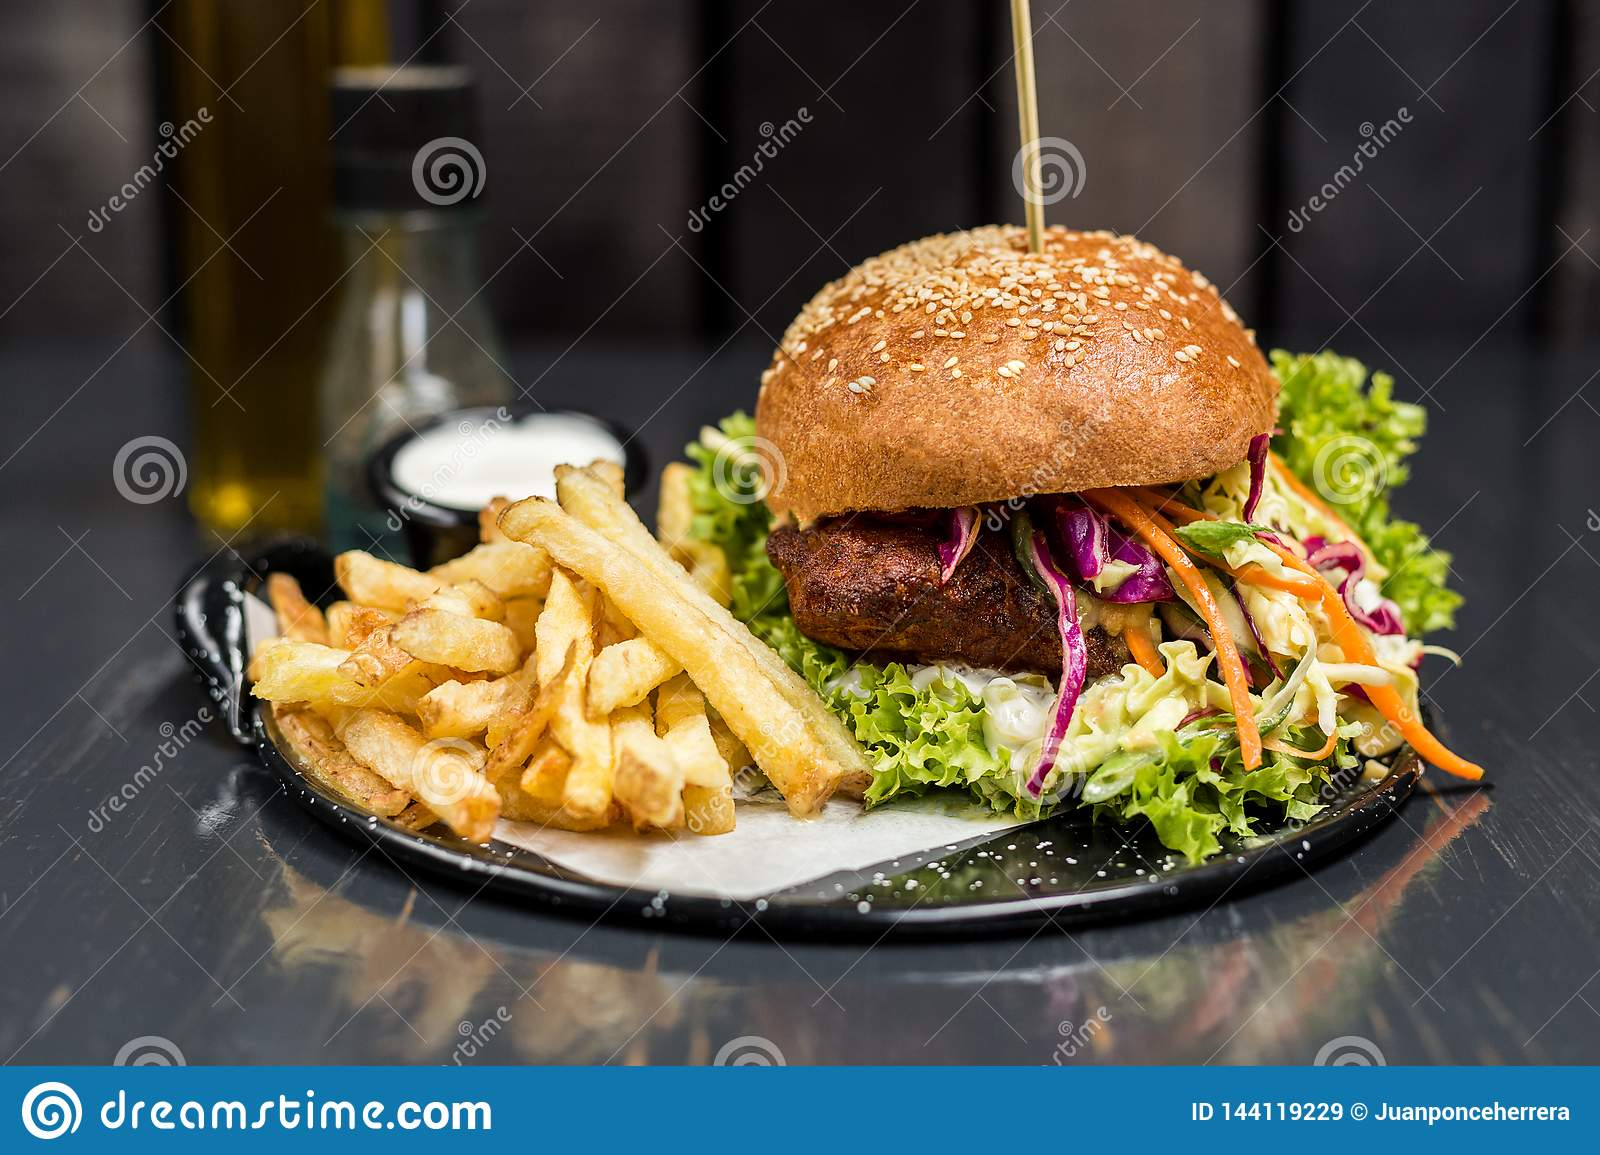 Fried chicken sandwich with vegetables and french fries on a wooden table